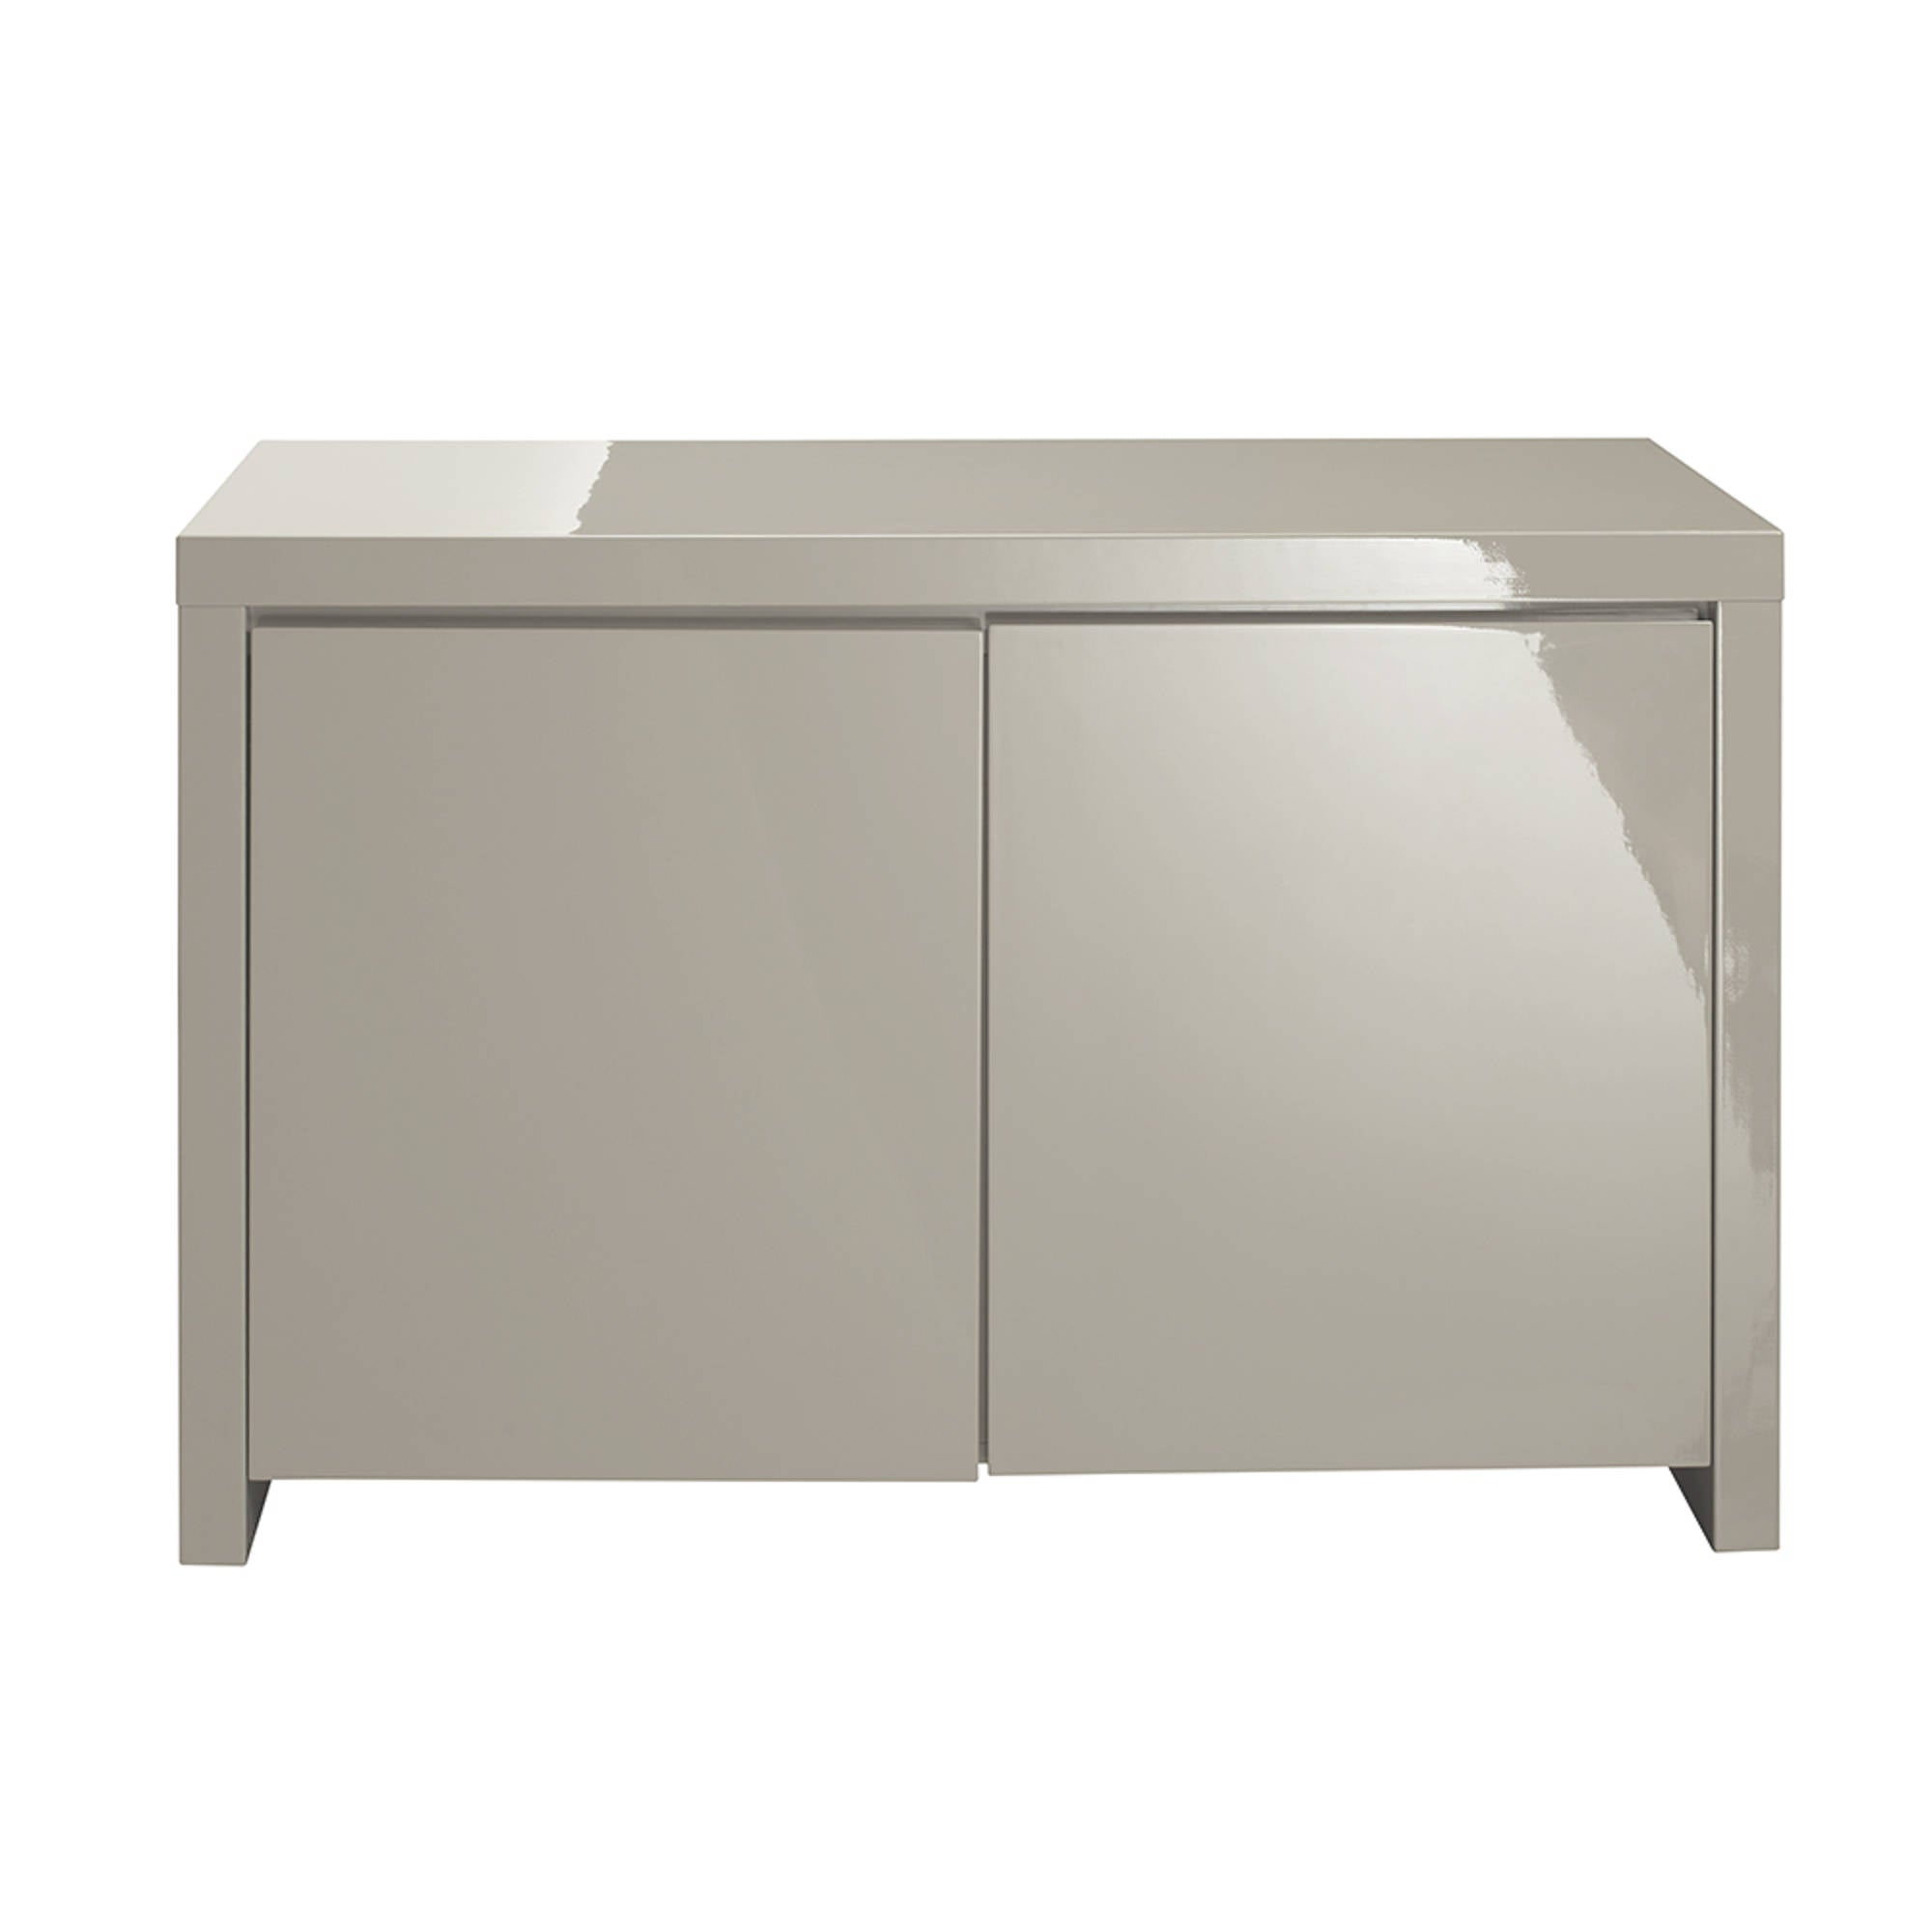 Sterling Sideboard in Stone